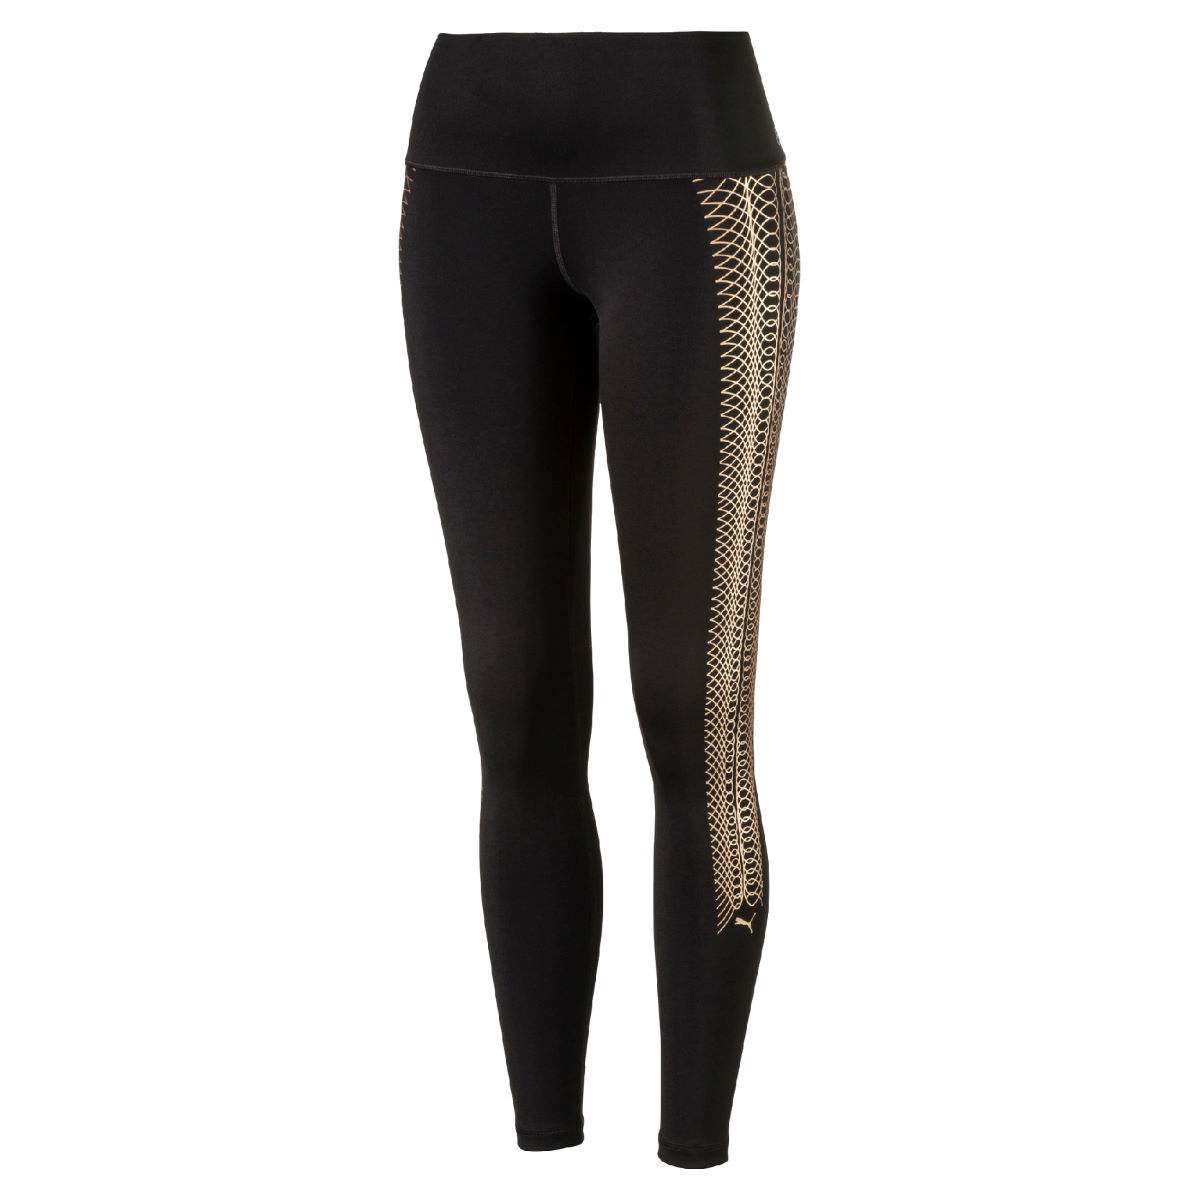 Puma Women's Everyday Graphic Gym Tight - S Puma Black-Copper la